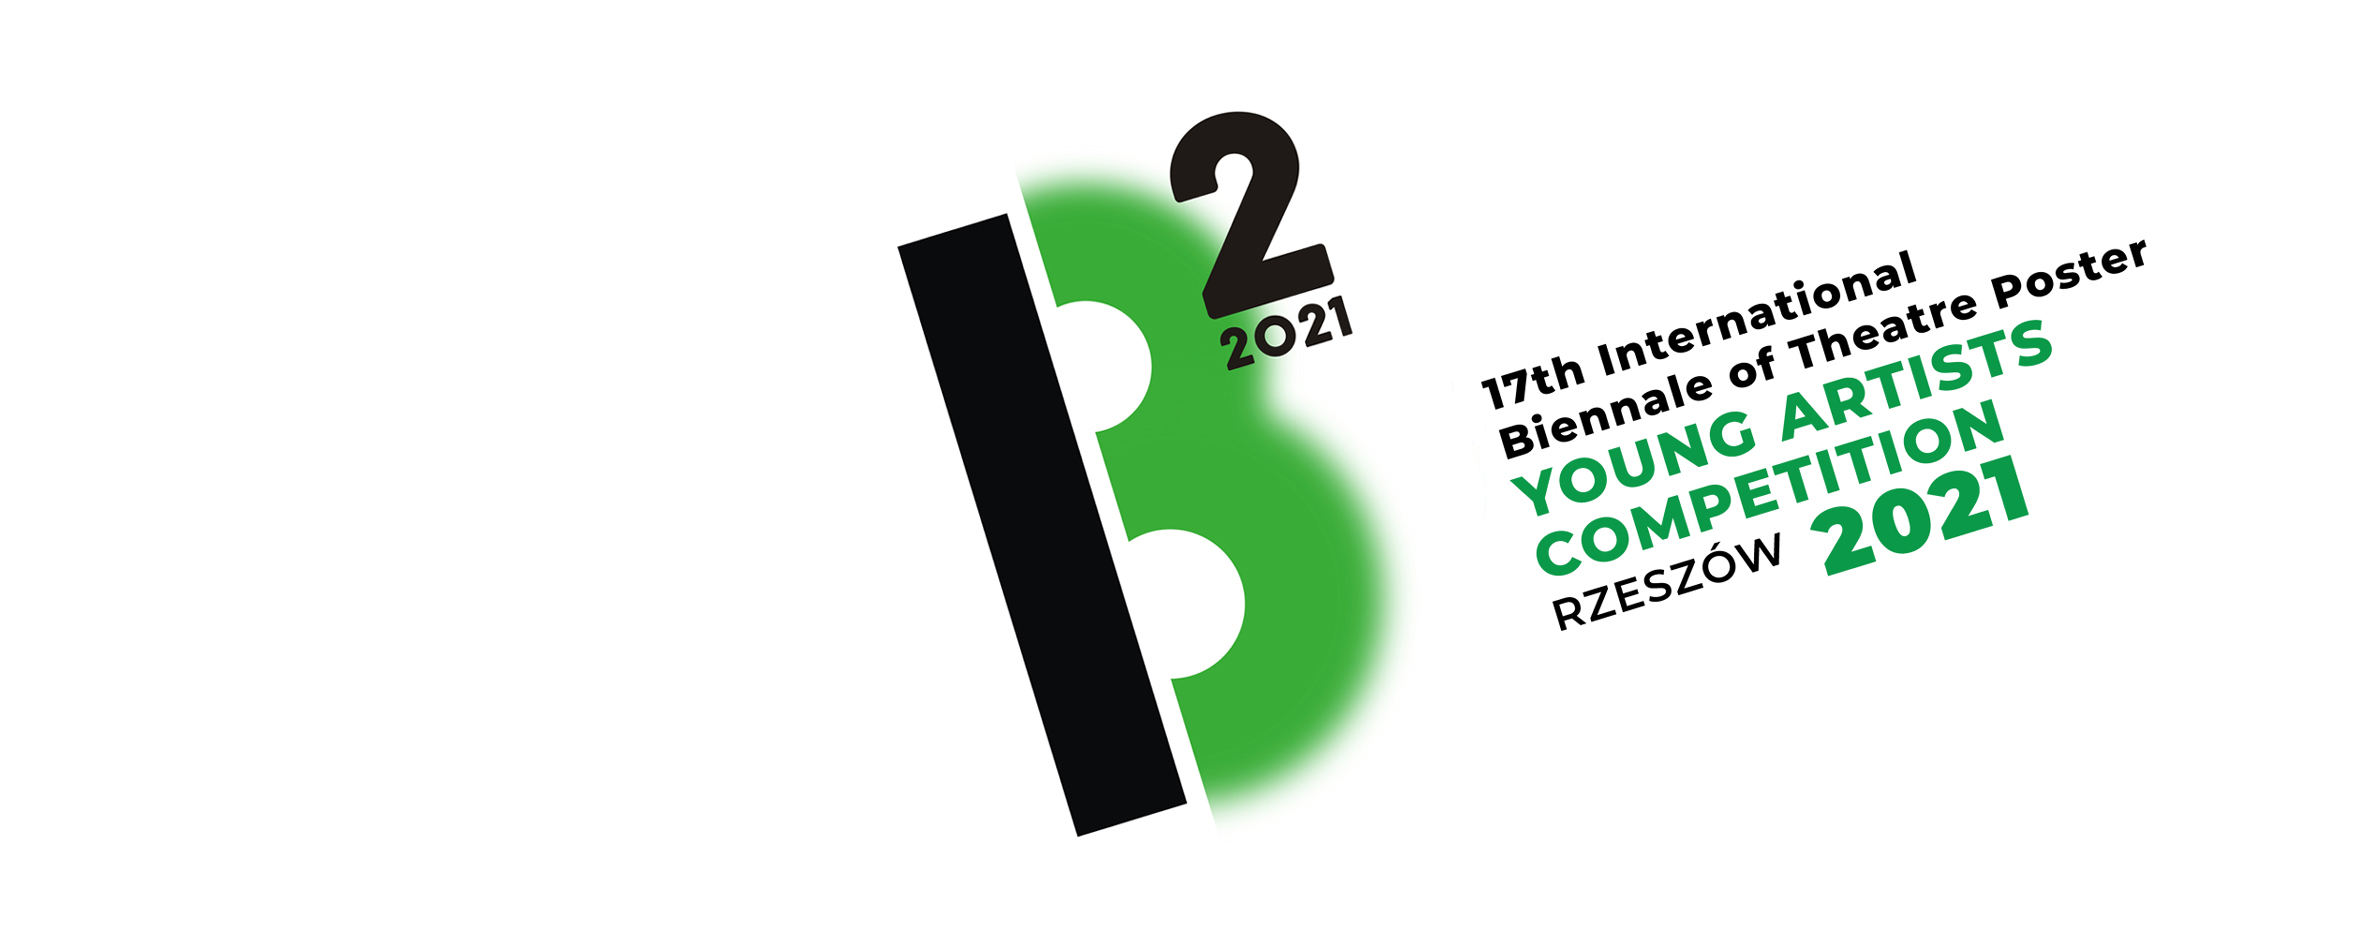 17th International Biennale of Theatre Poster - YOUNG ARTISTS COMPETITION 2021